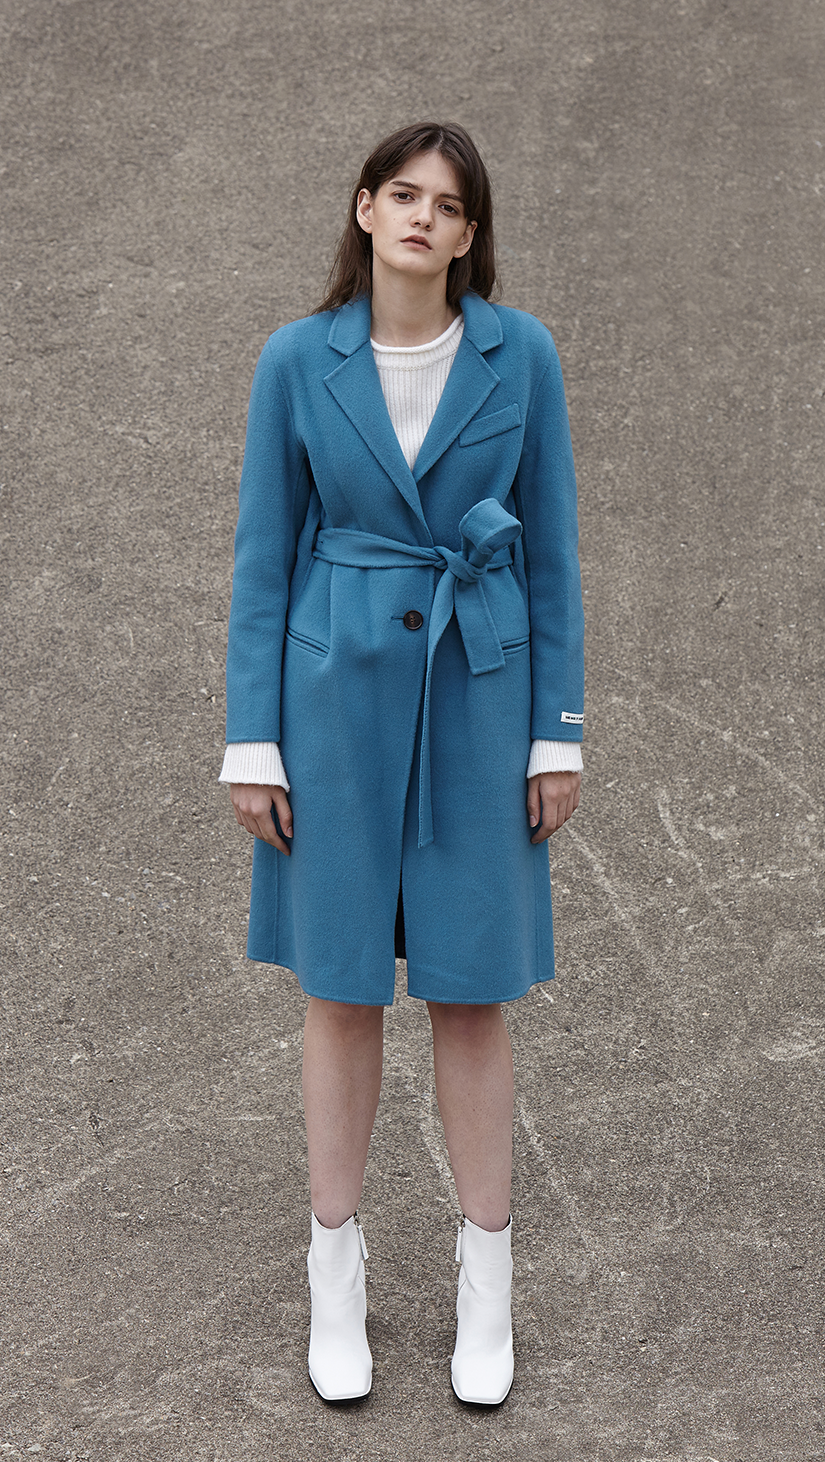 The Arya Coat is cut for a long-line silhouette that falls just below the knee. With a single-button fasting along front. Use the self-tie belt to flatter and define your waistline. Handmade.